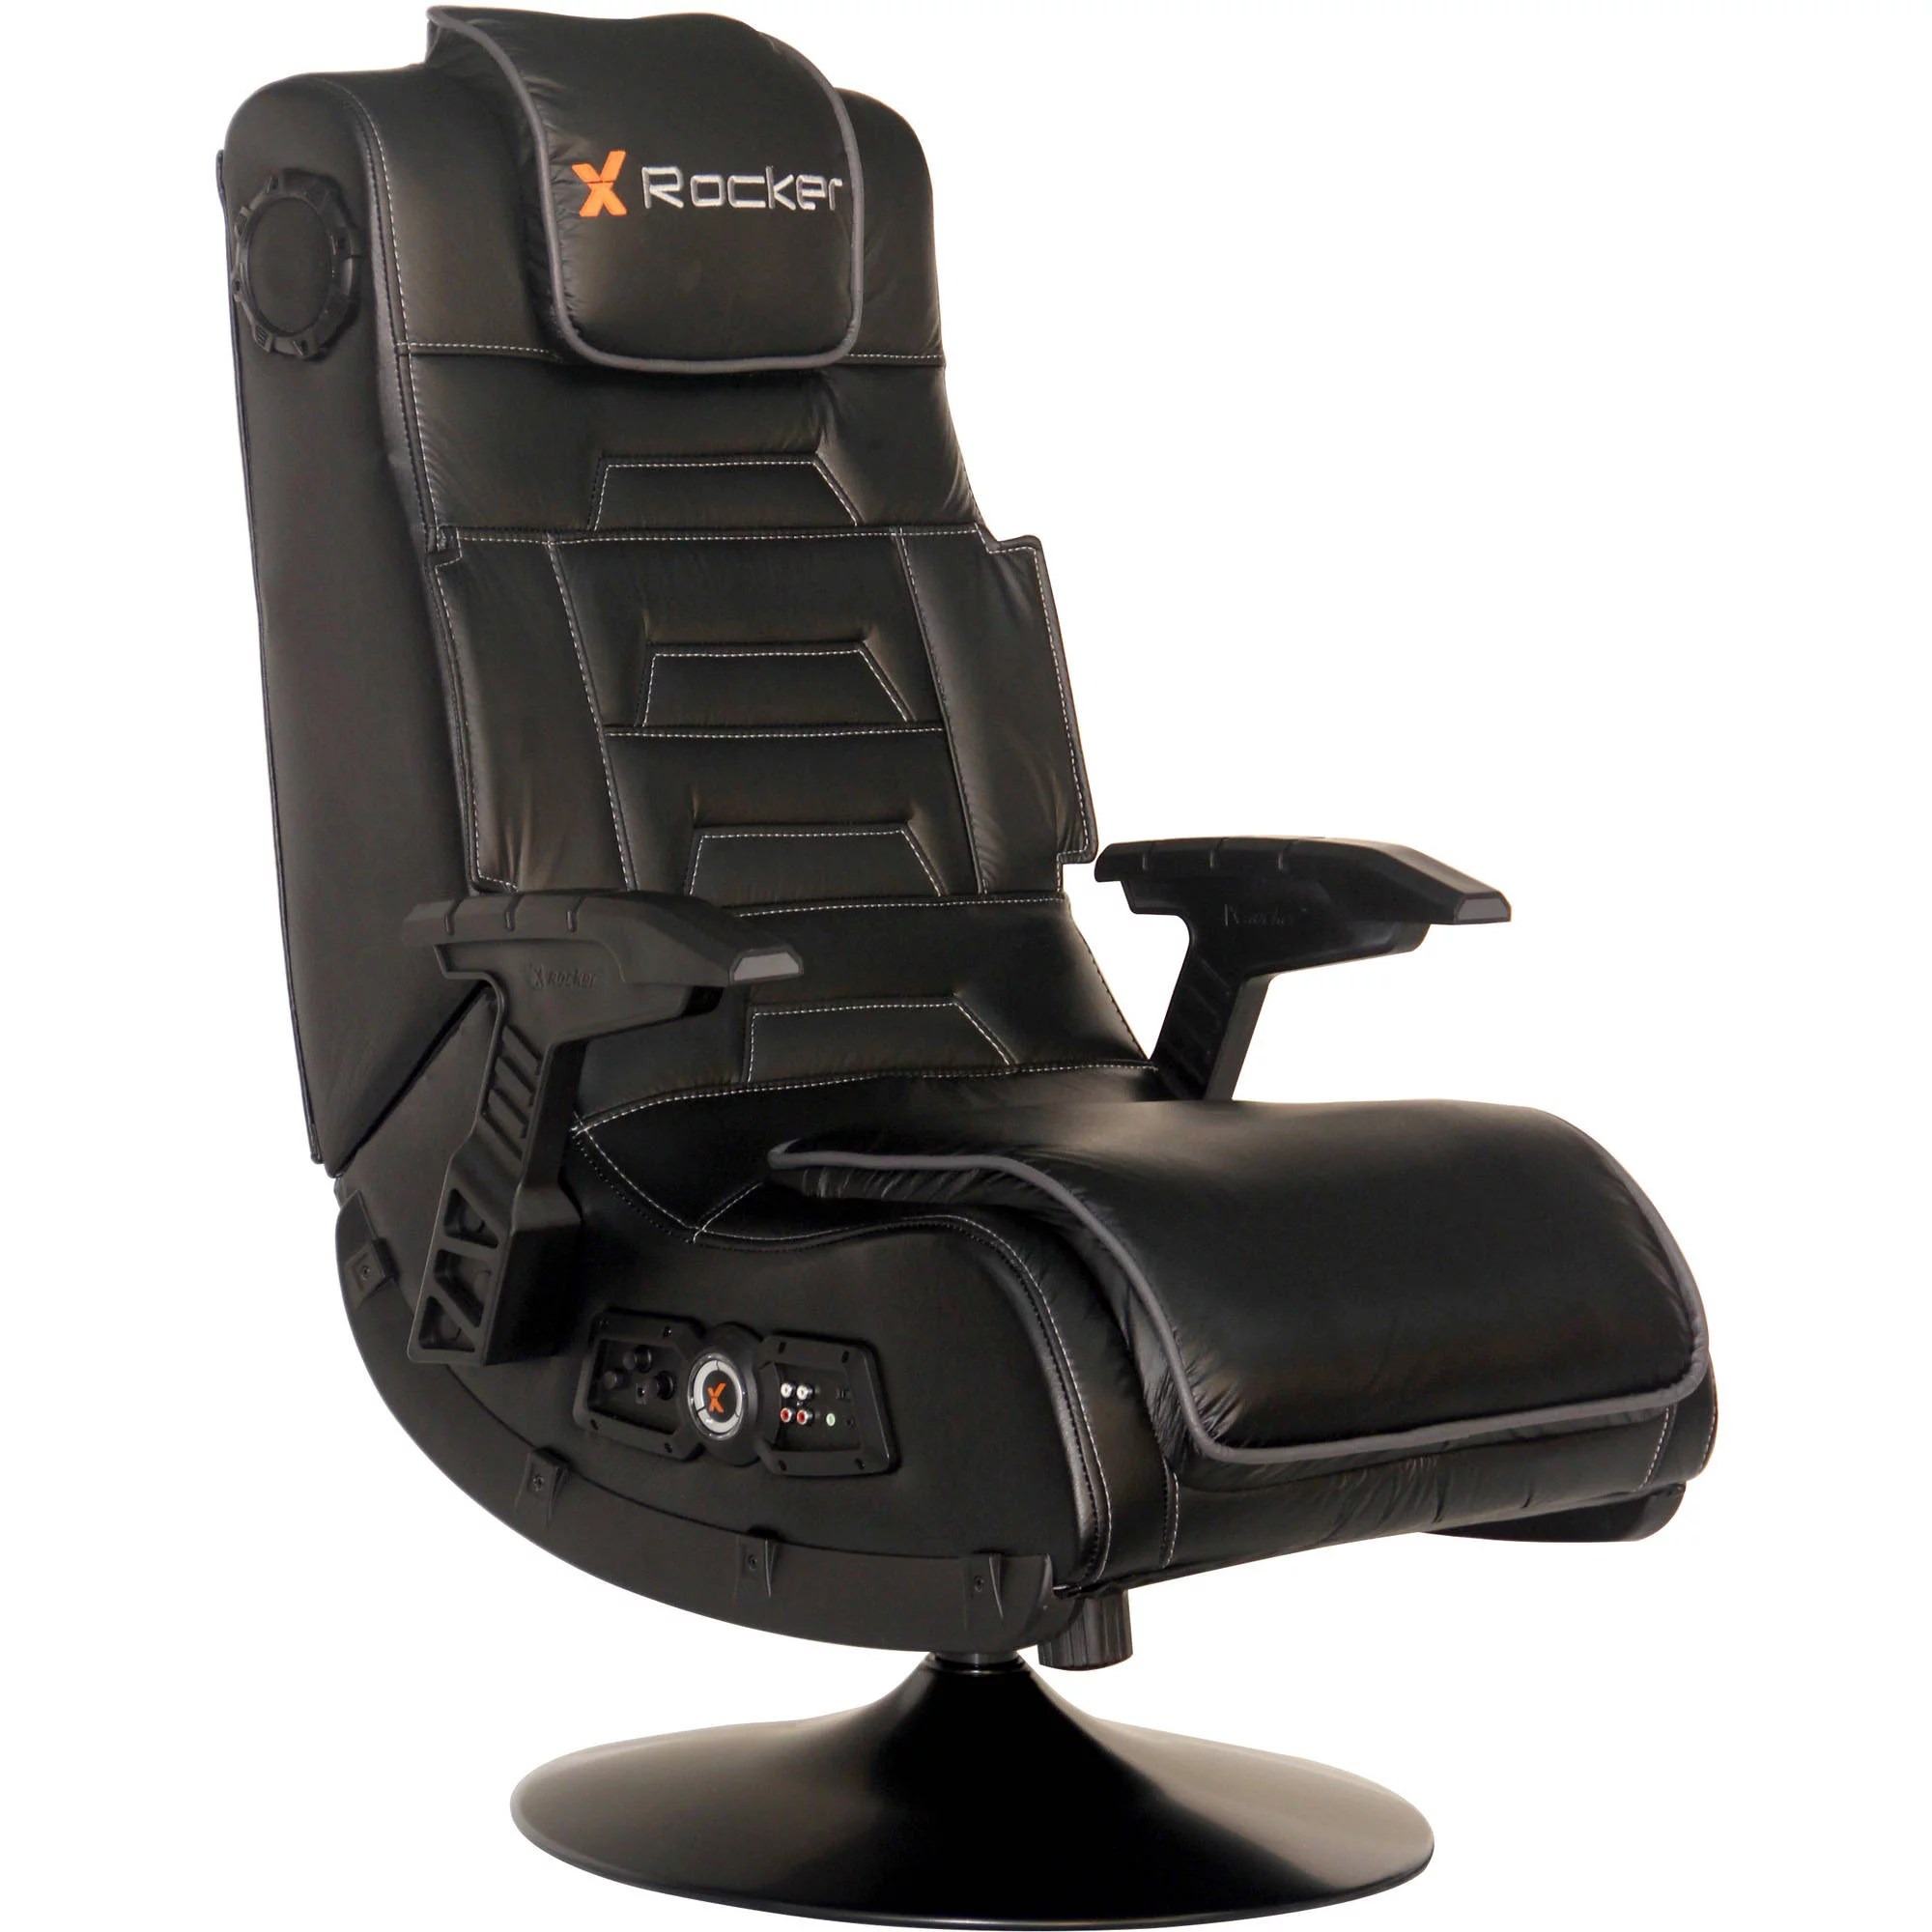 Game Chair Rocker X Video Rocker Pro Series Pedestal 2 1 Wireless Audio